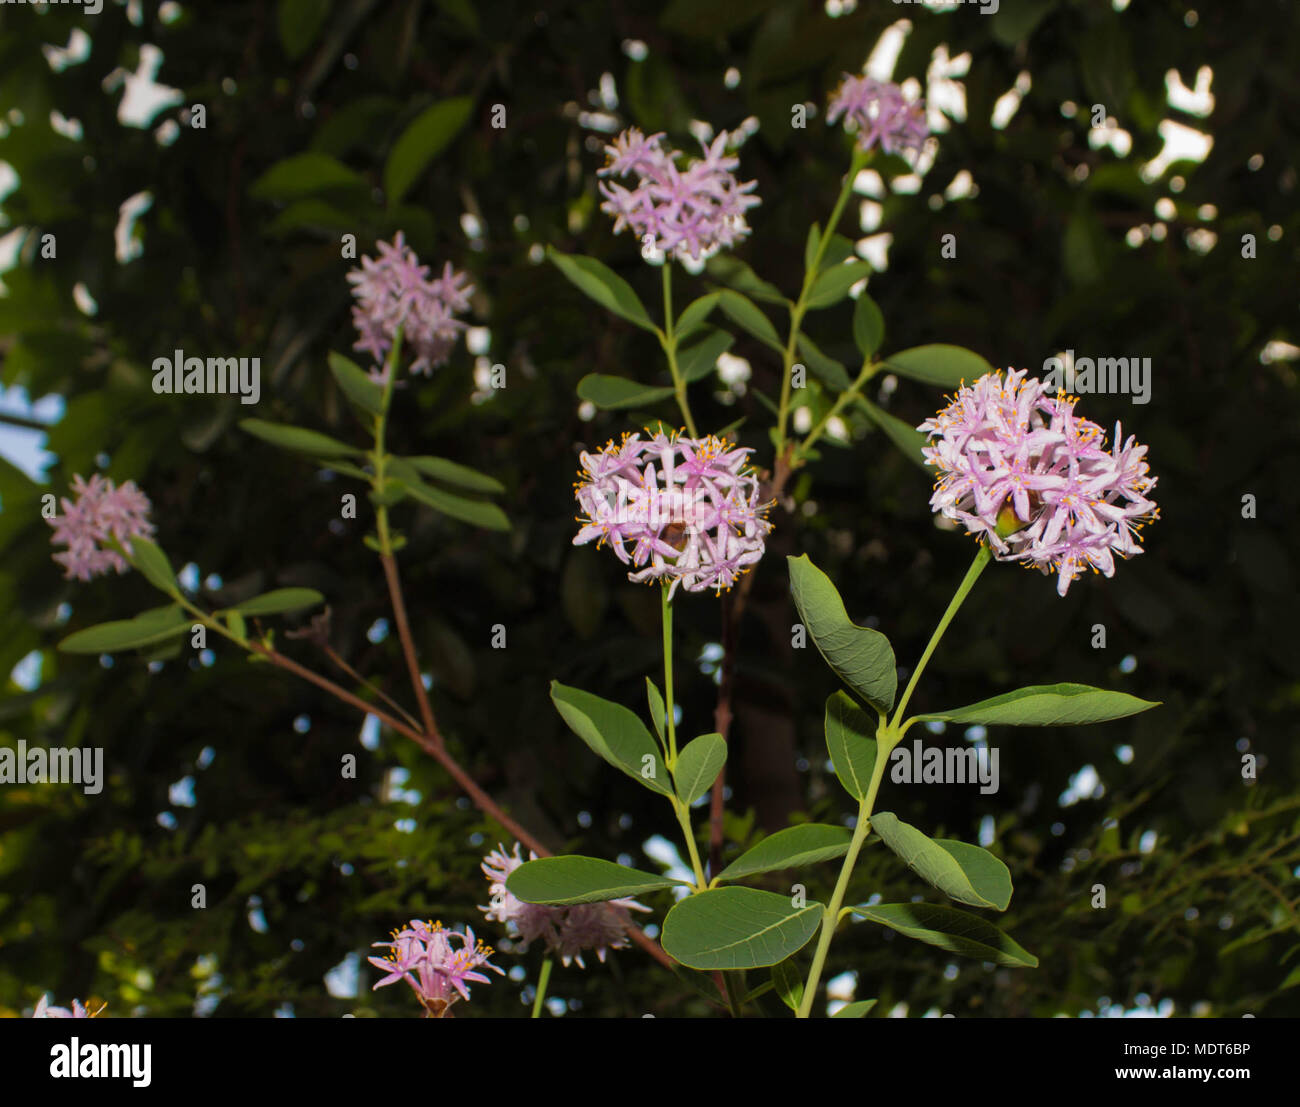 Round Light Pink Flowers On Green Foliage Background Subtropical